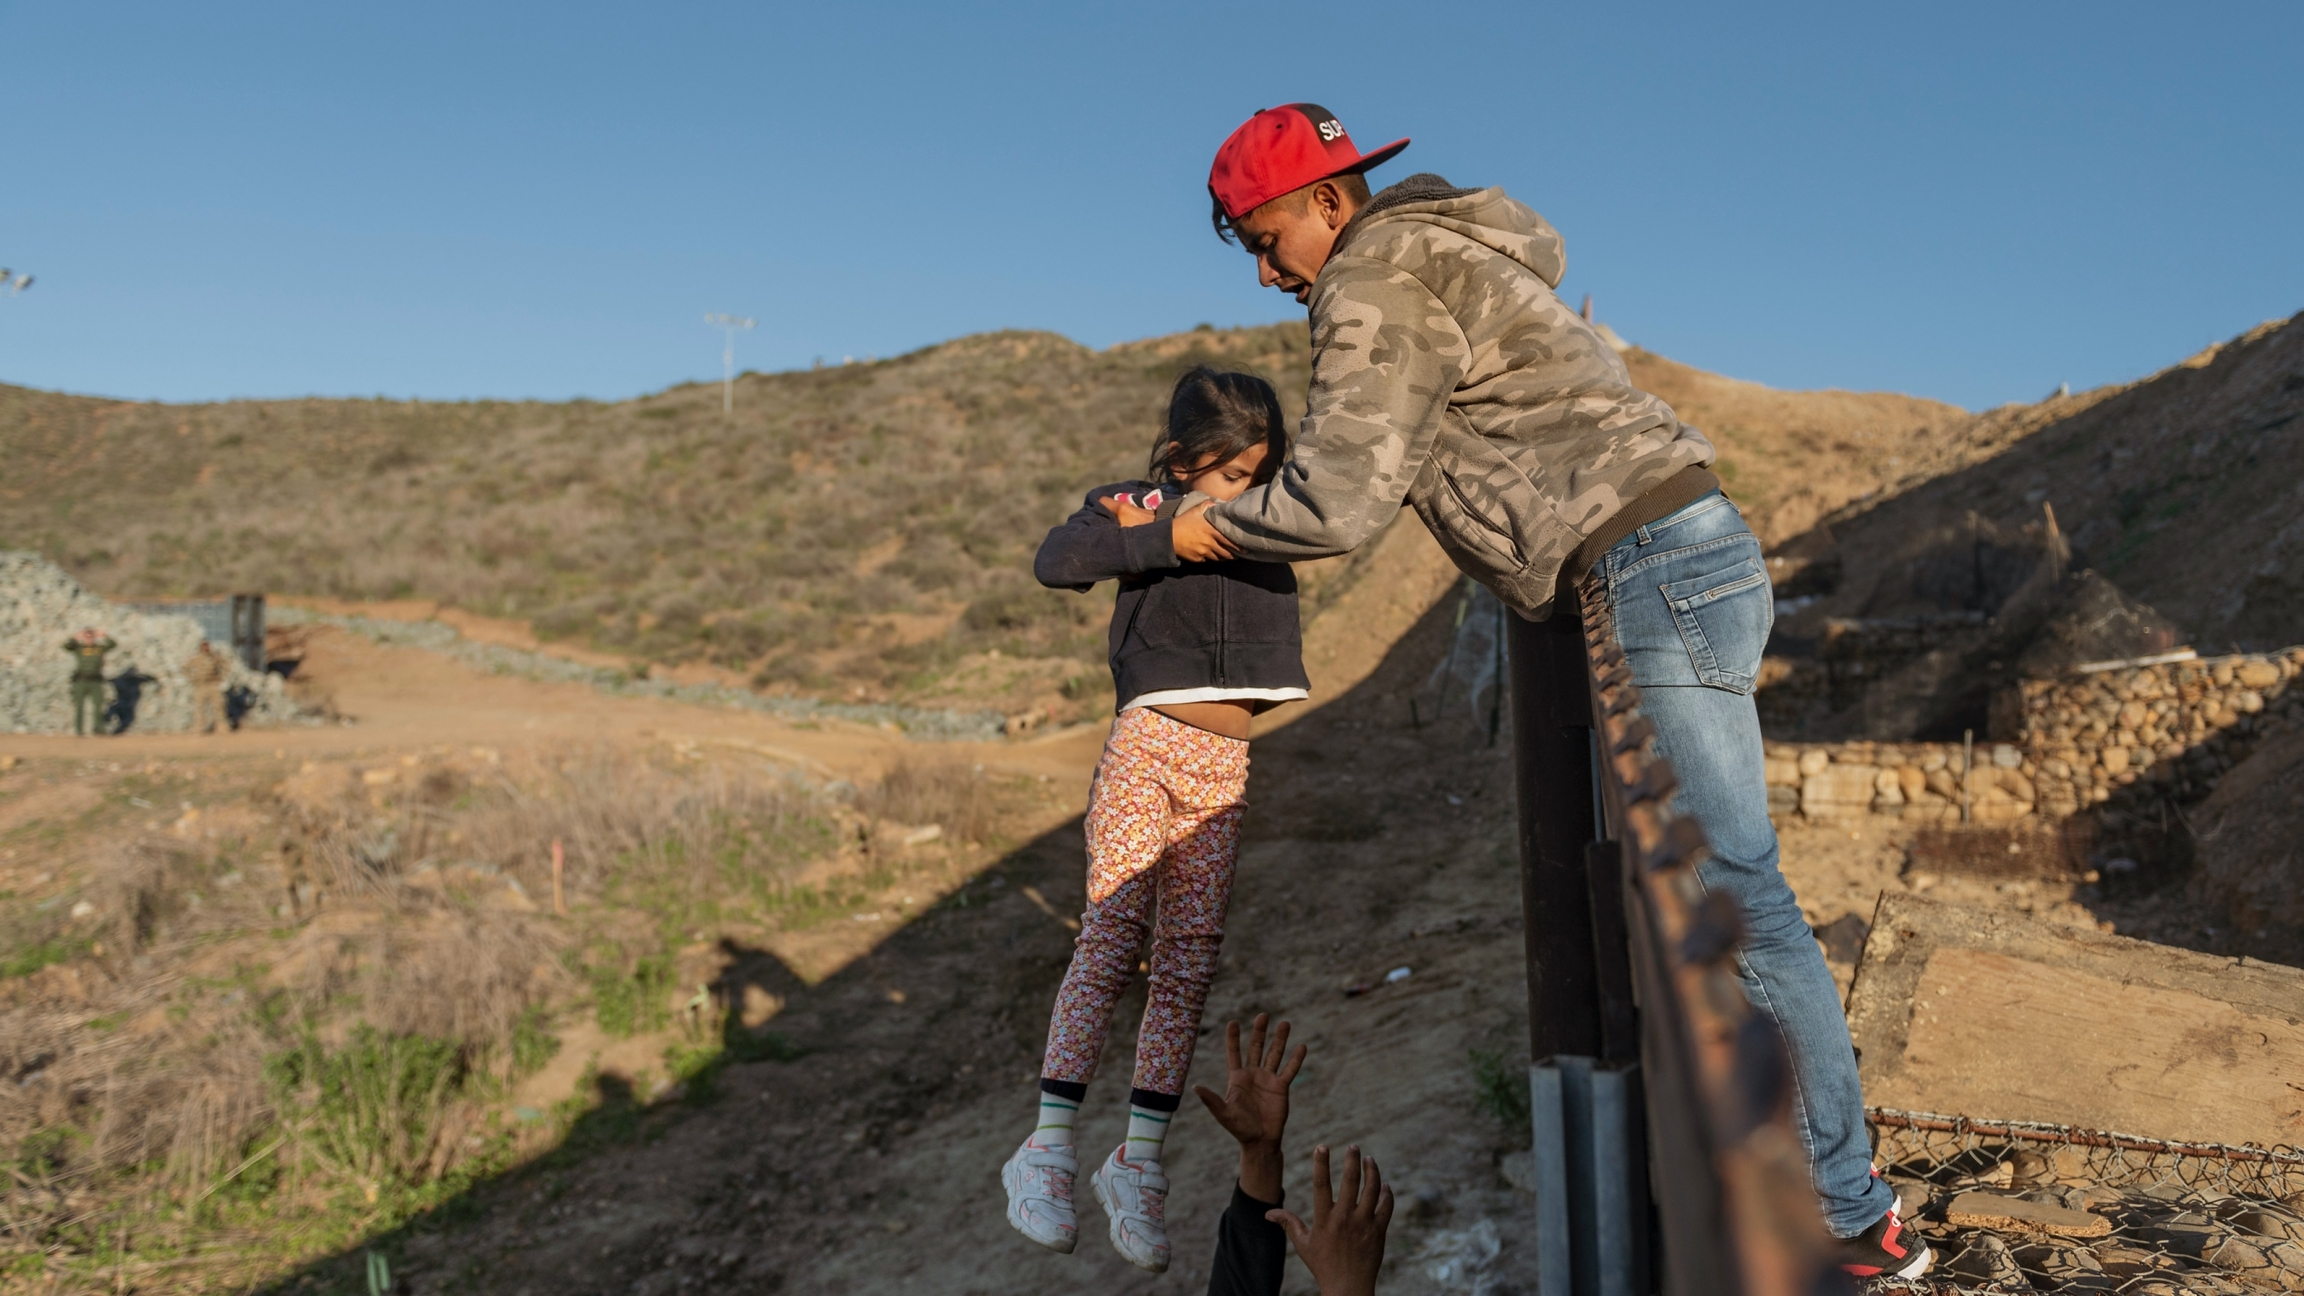 A child is passed over a border wall to the arms of a man wearing jeans, a red cap and tan sweatshirt.